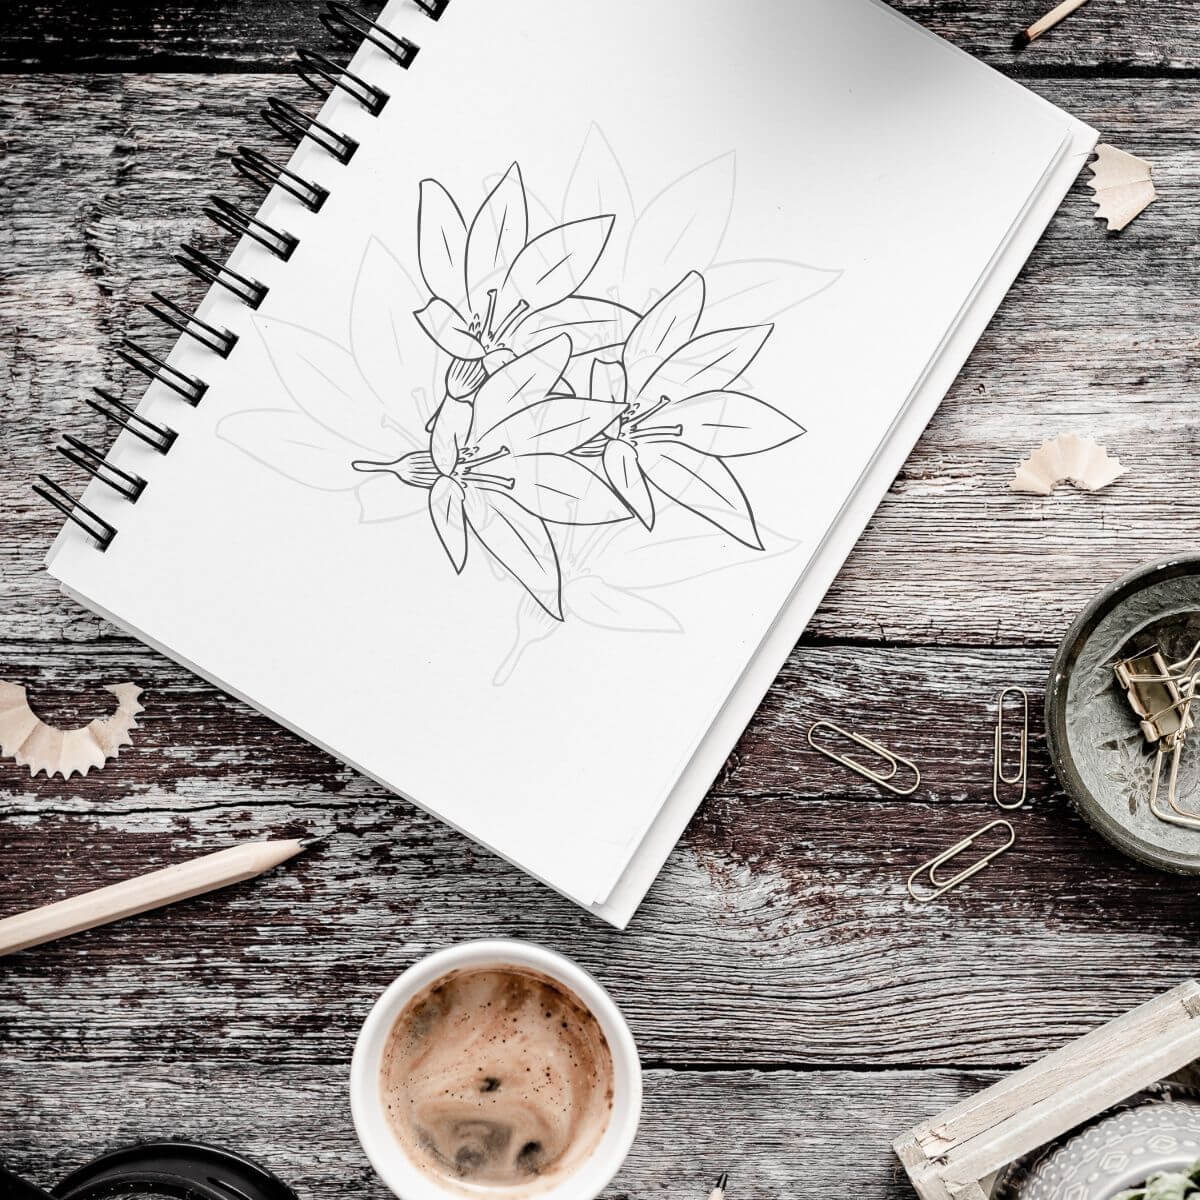 7 Ways To Use Mockups - Products & Designs